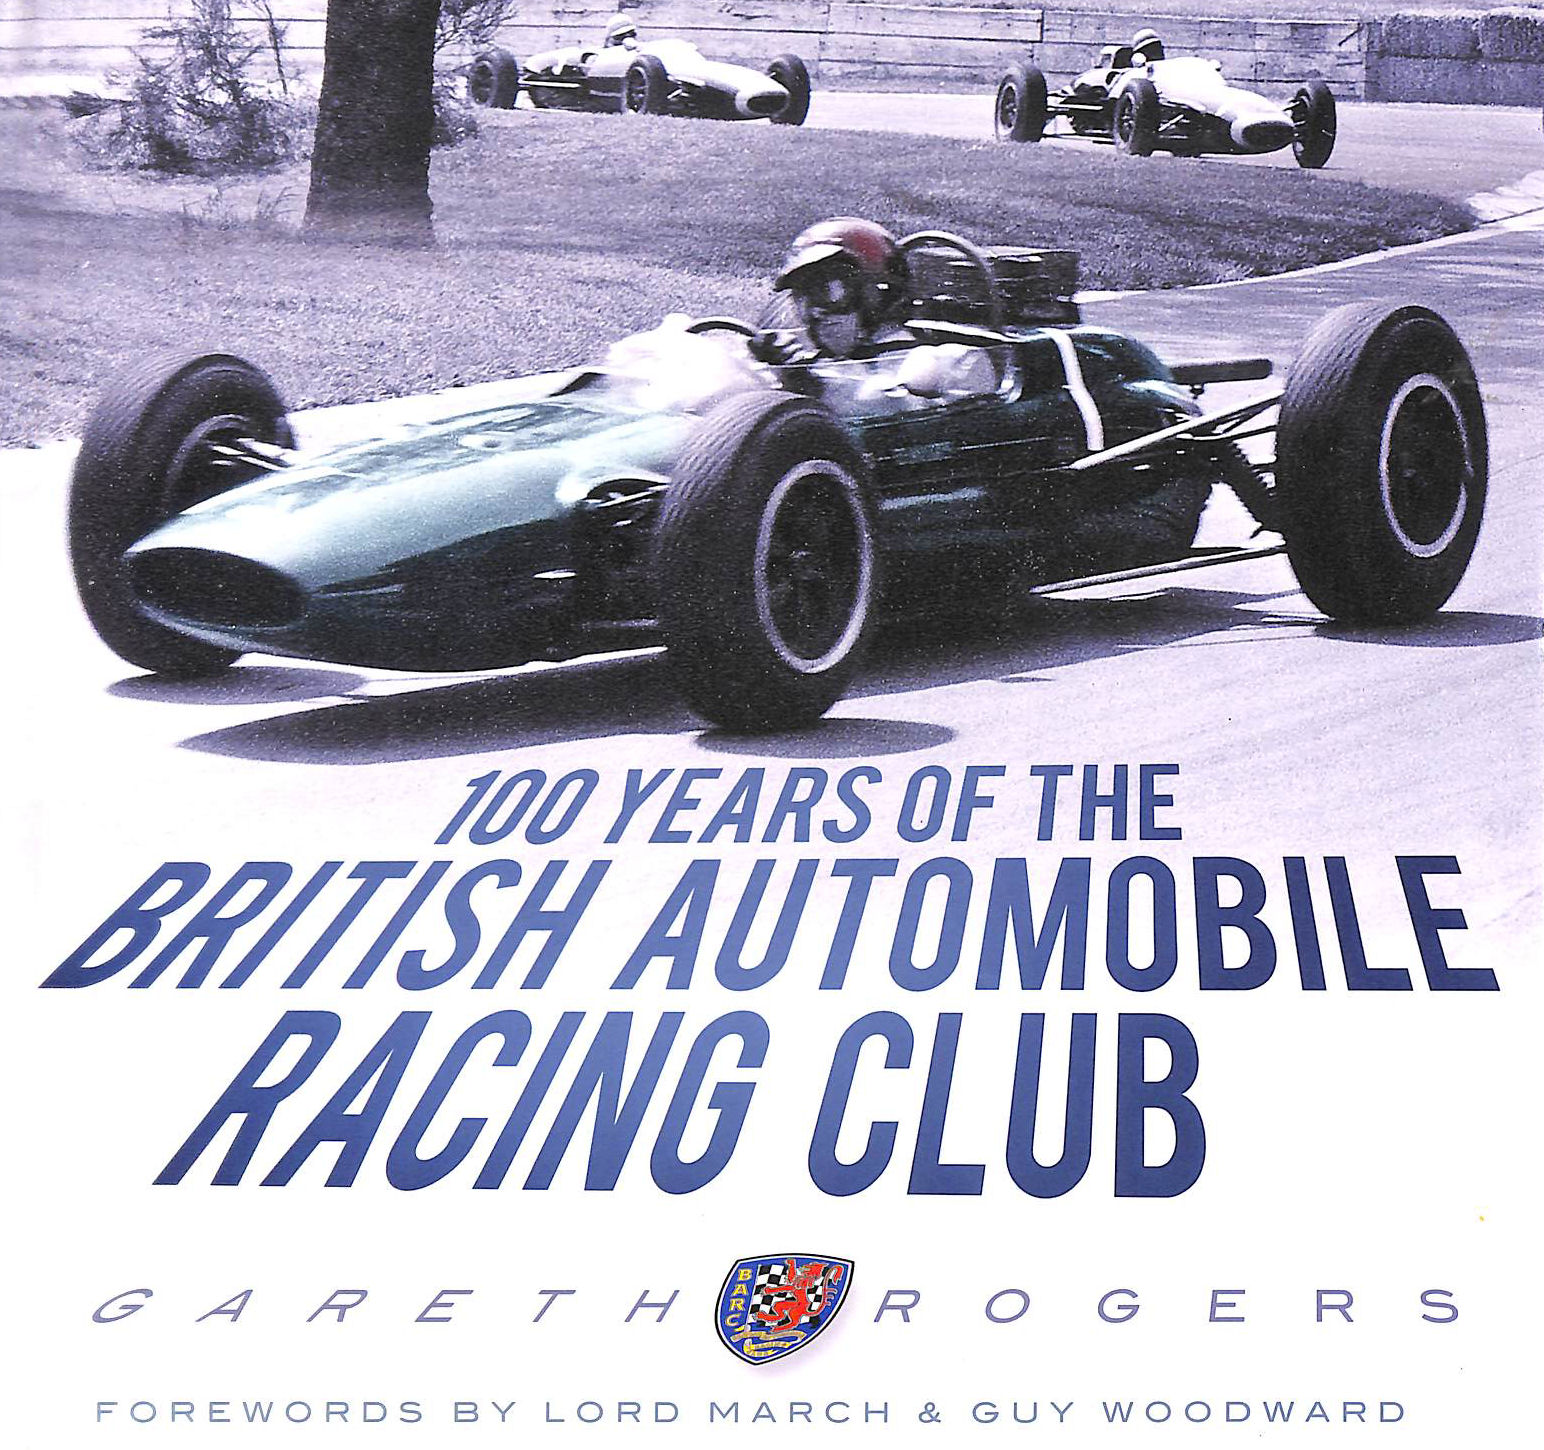 Image for 100 Years of the British Automobile Racing Club